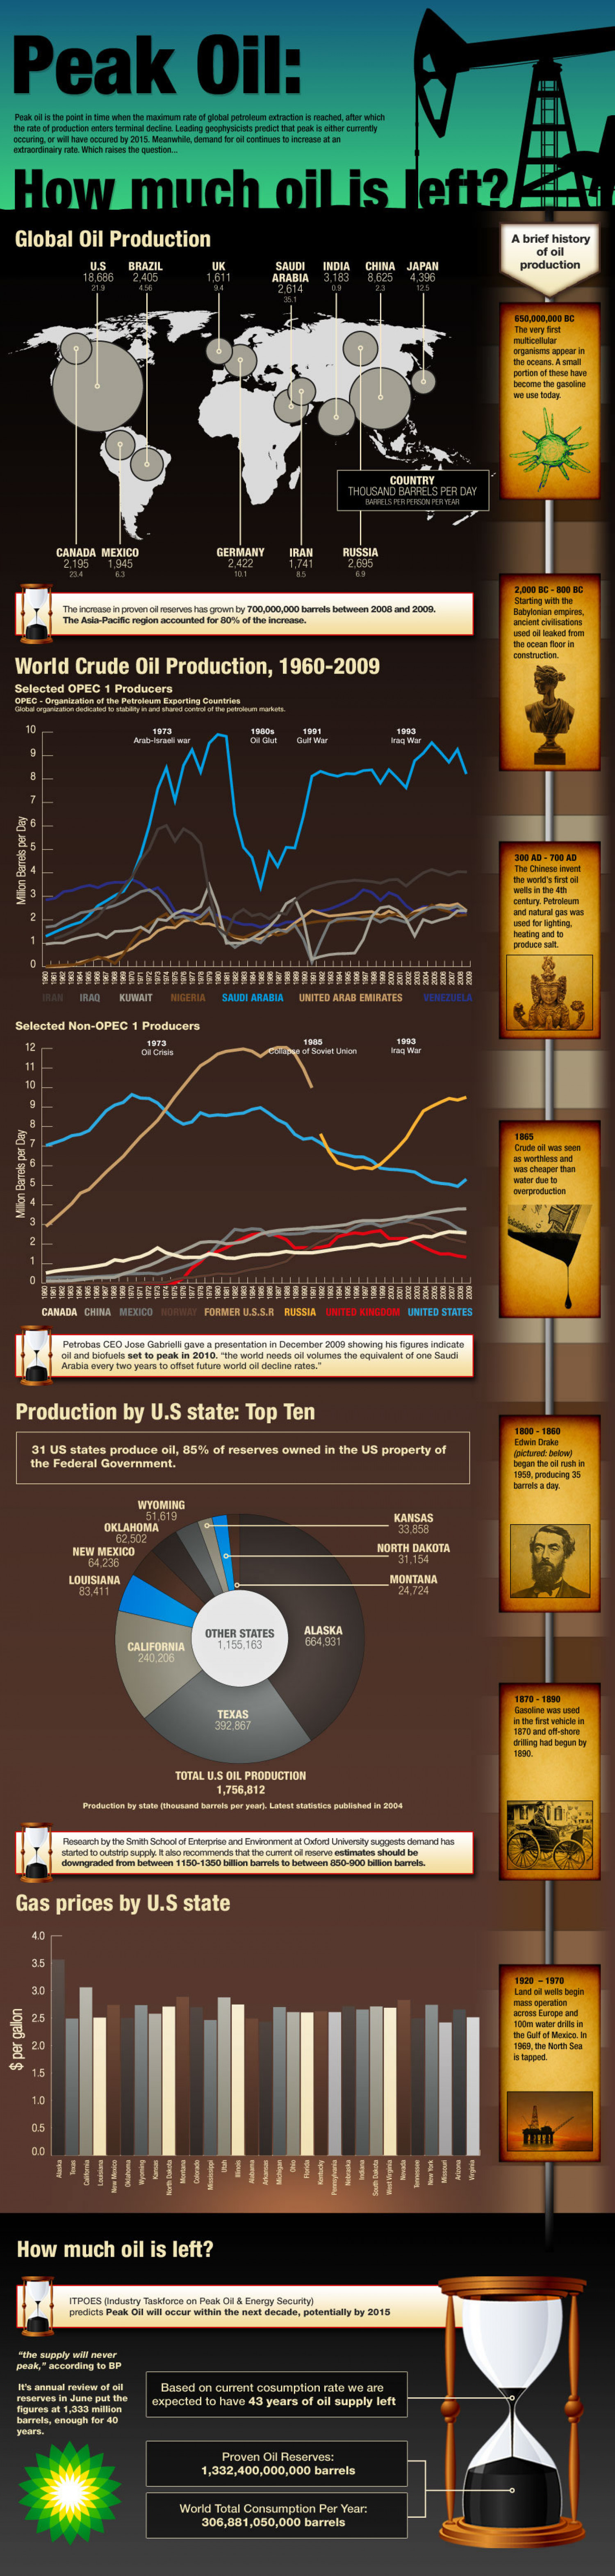 Peak Oil Consumption - How Much Oil Is Left? Infographic